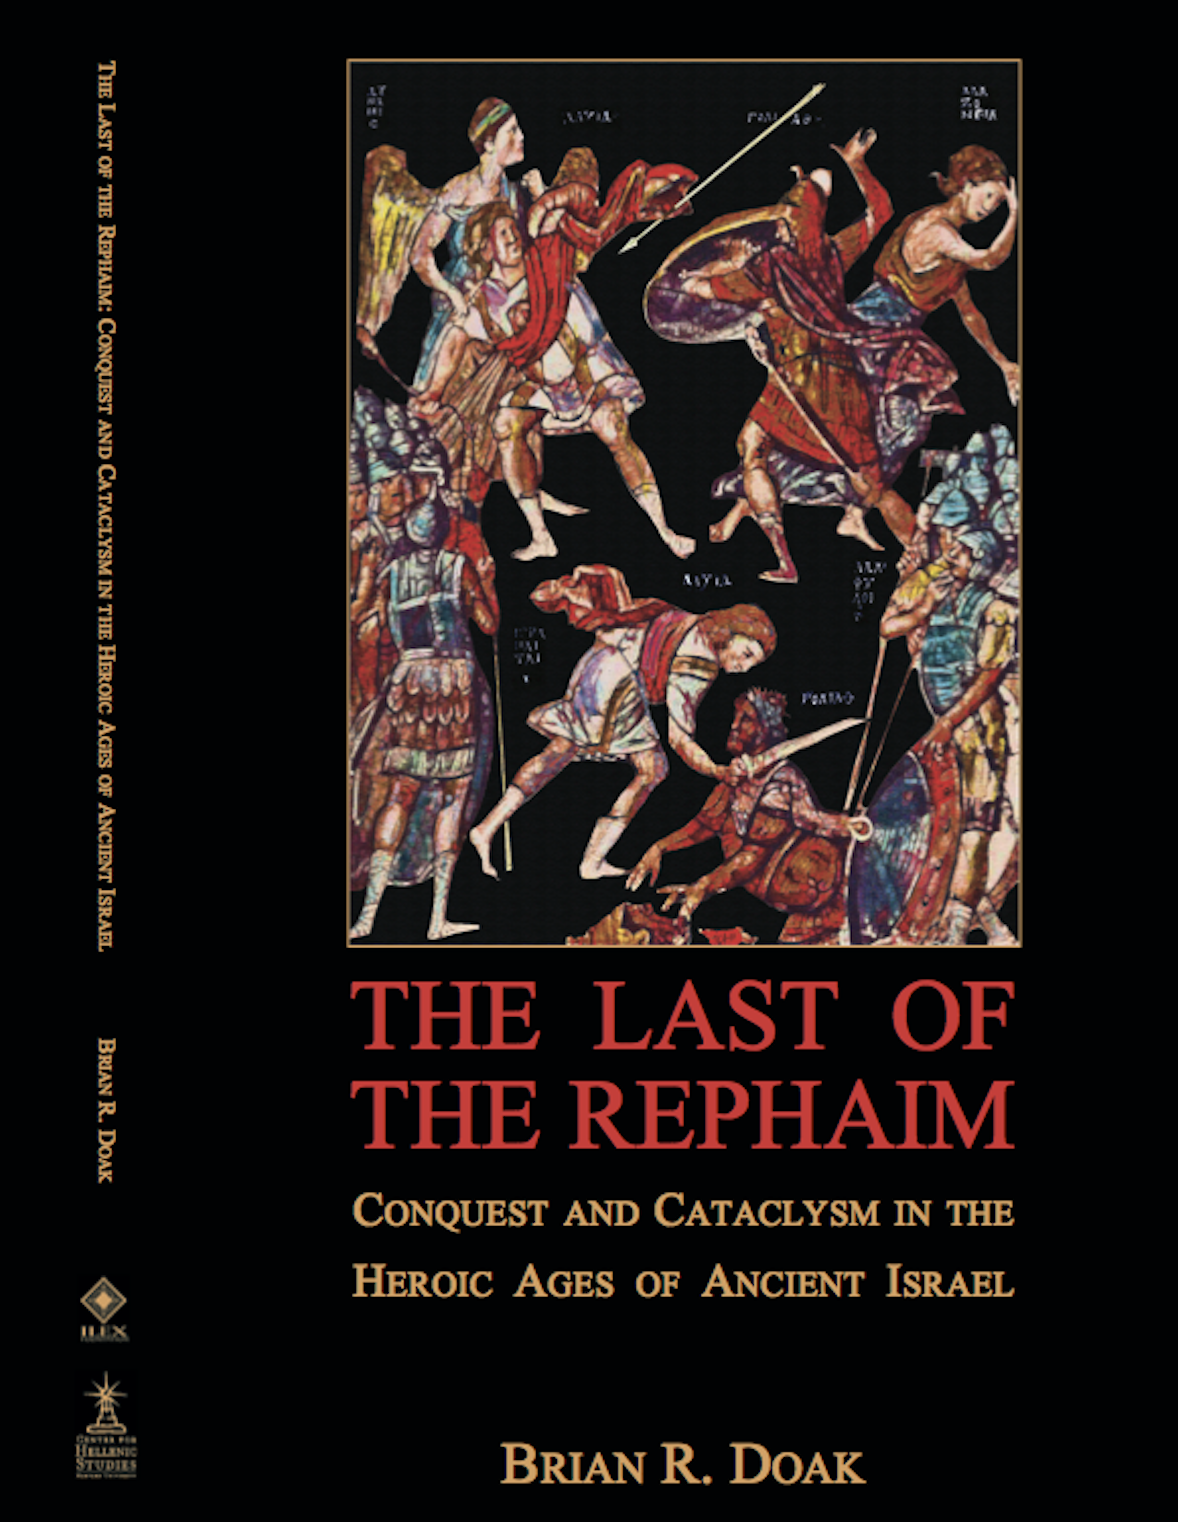 The Last of the Rephaim: Conquest and Cataclysm in the Heroic Ages of Ancient Israel   (Boston and Washington D.C.: Ilex Foundation and the Center for Hellenic Studies, via HUP, 2012)